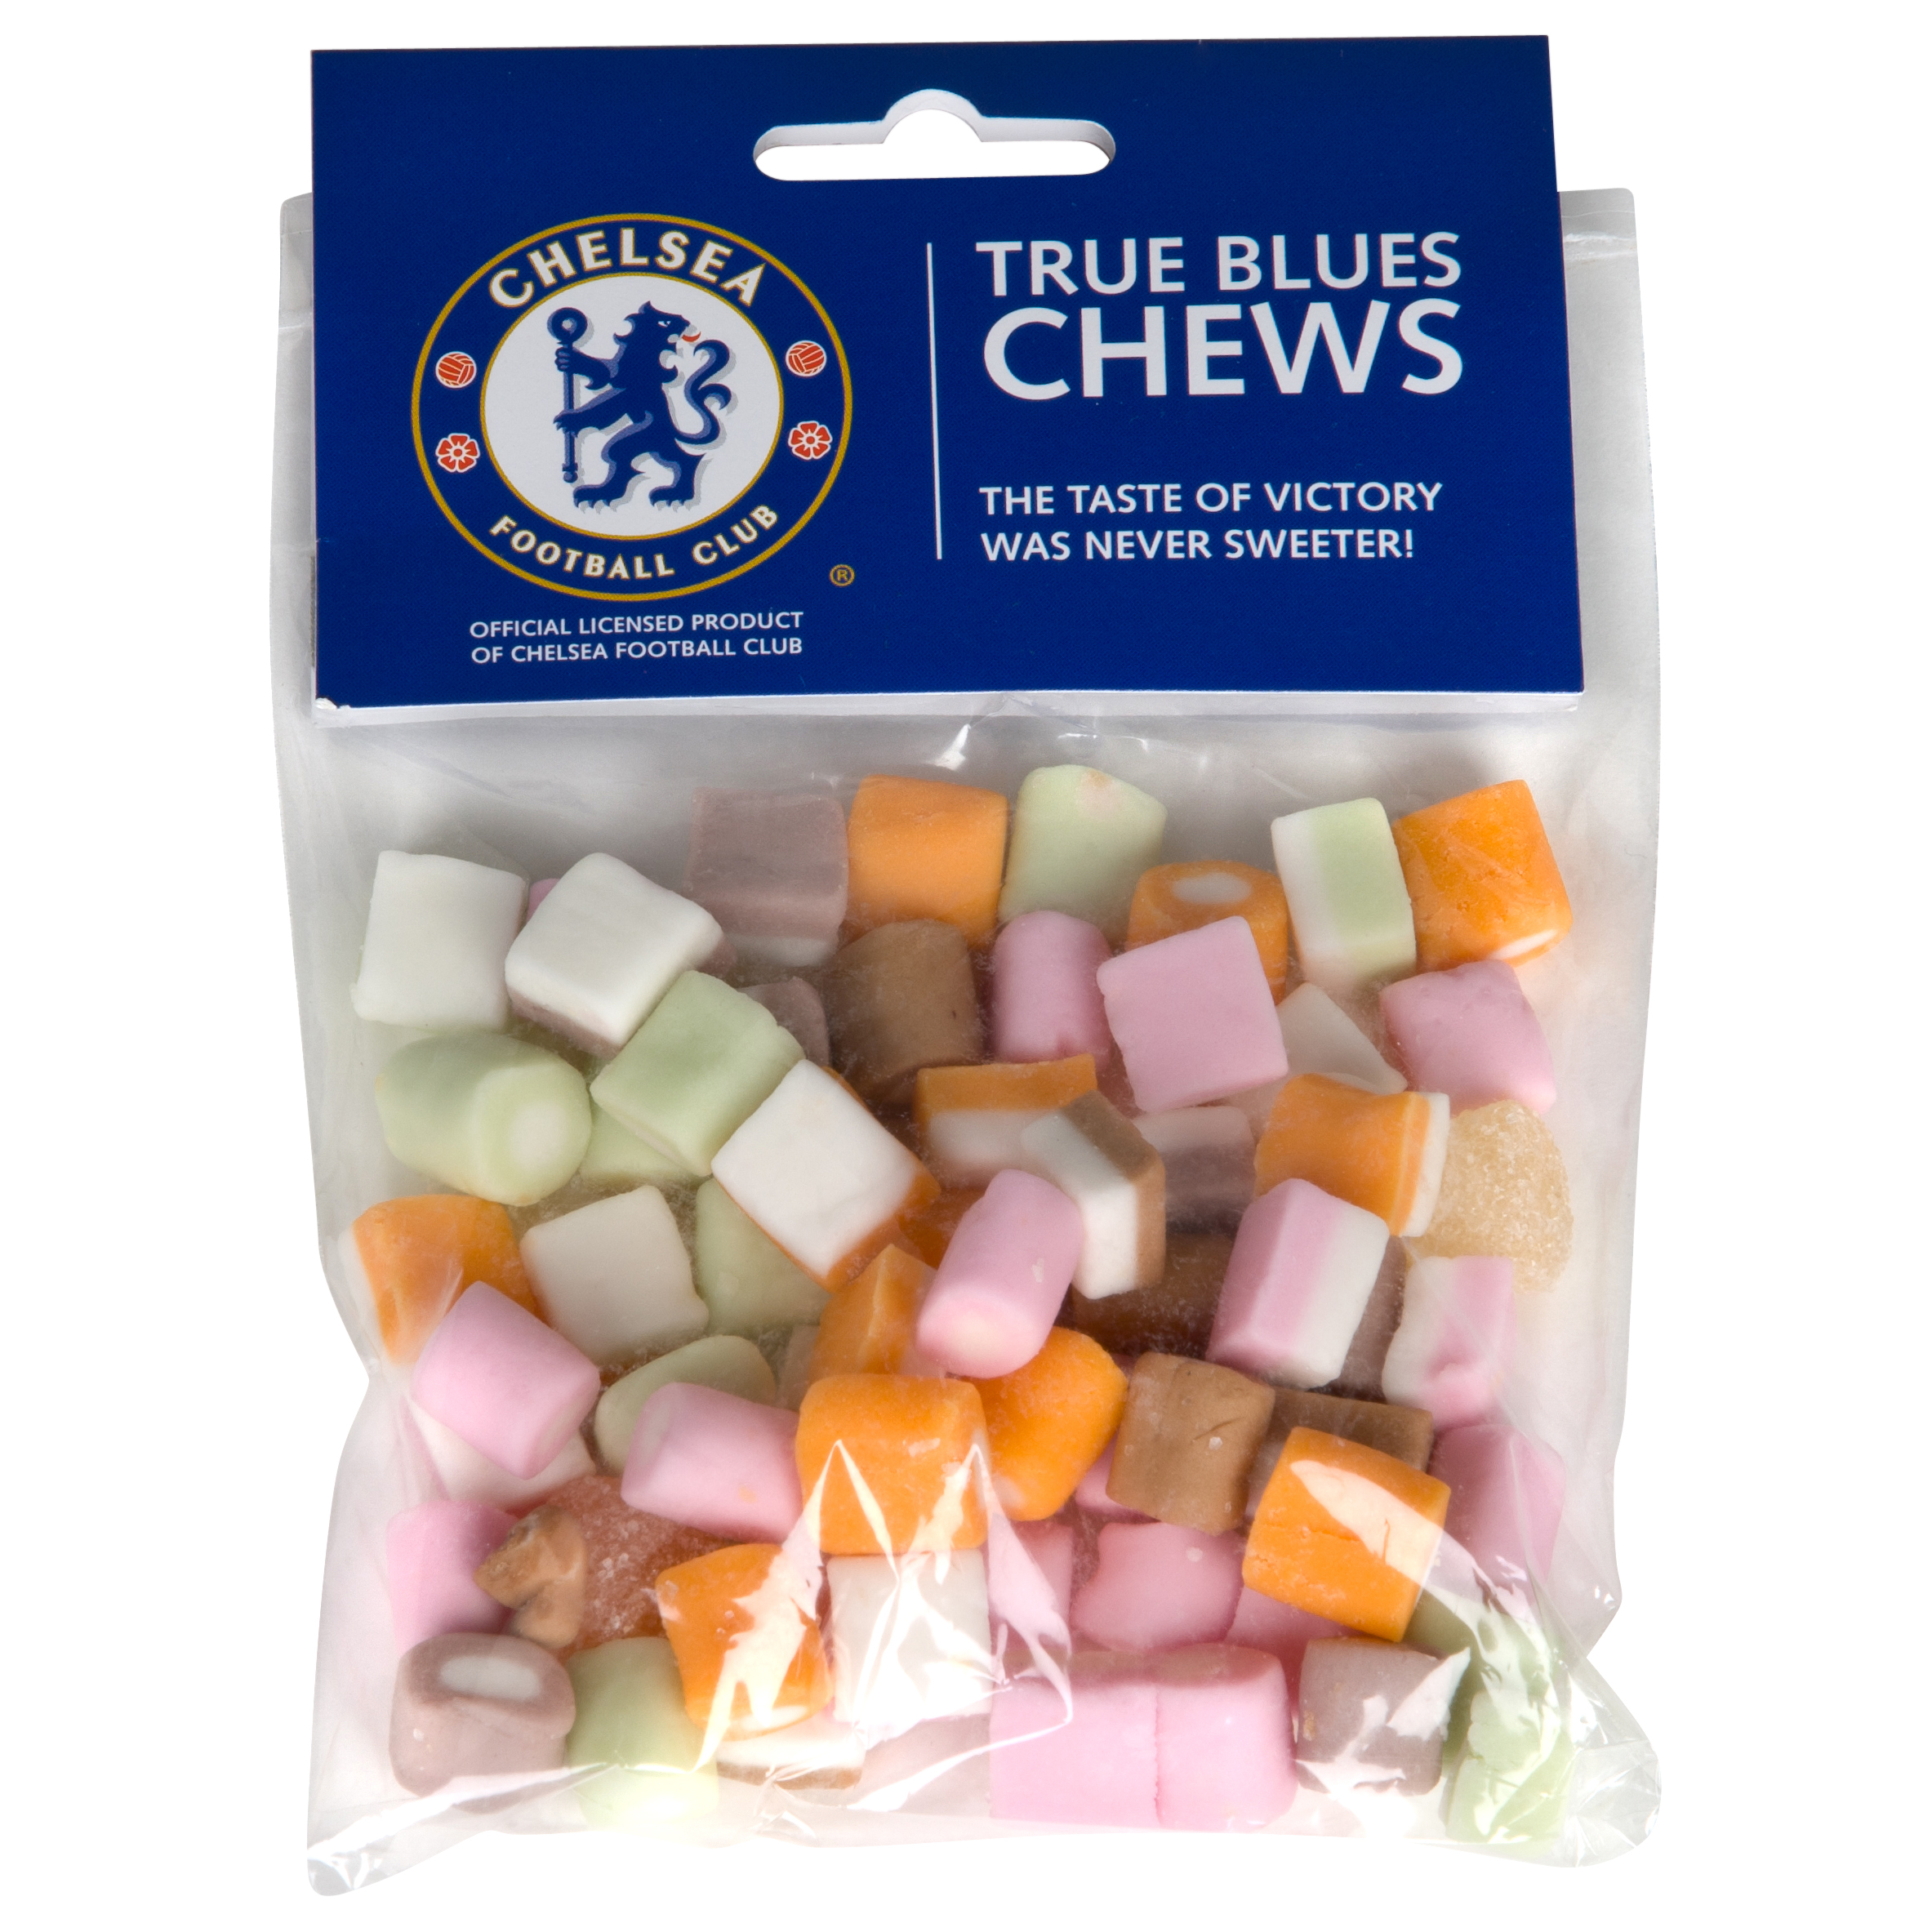 Chelsea 100g Bag of Dolly Mixtures